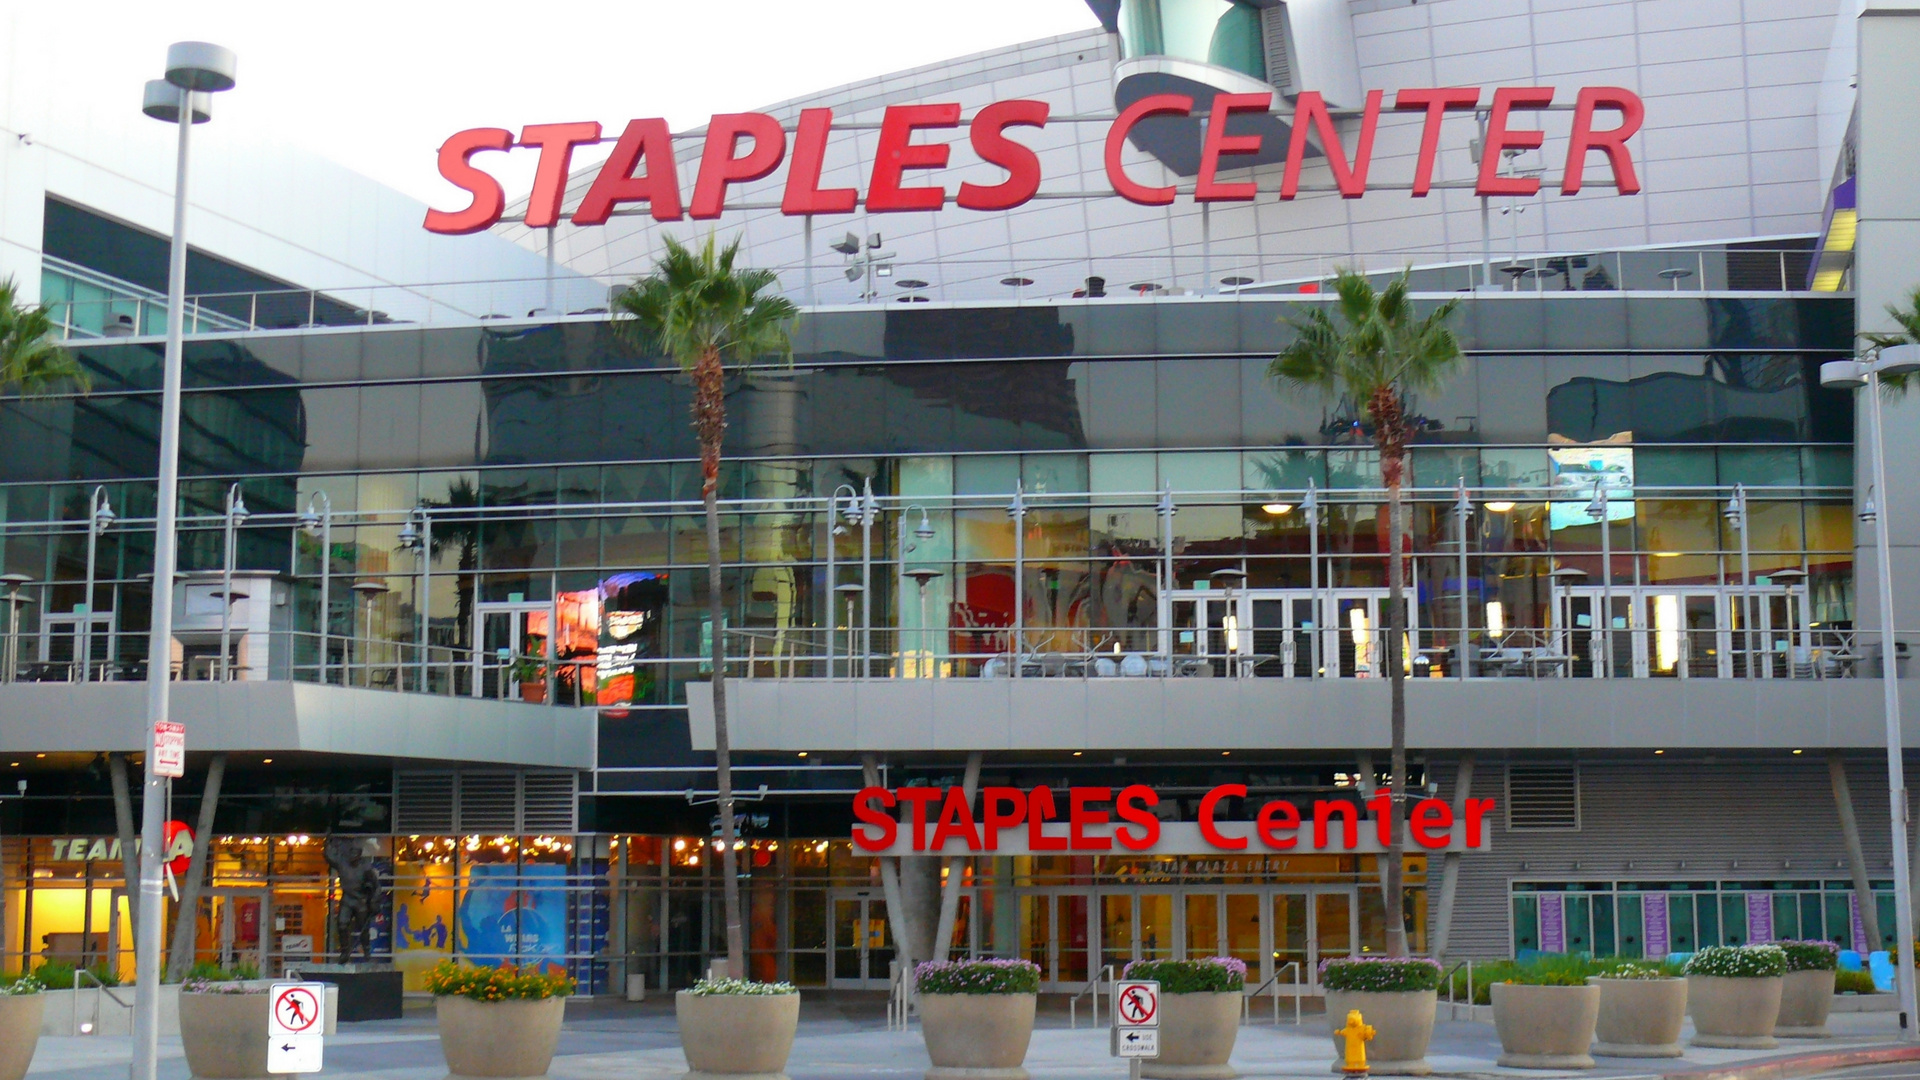 The Staples Center